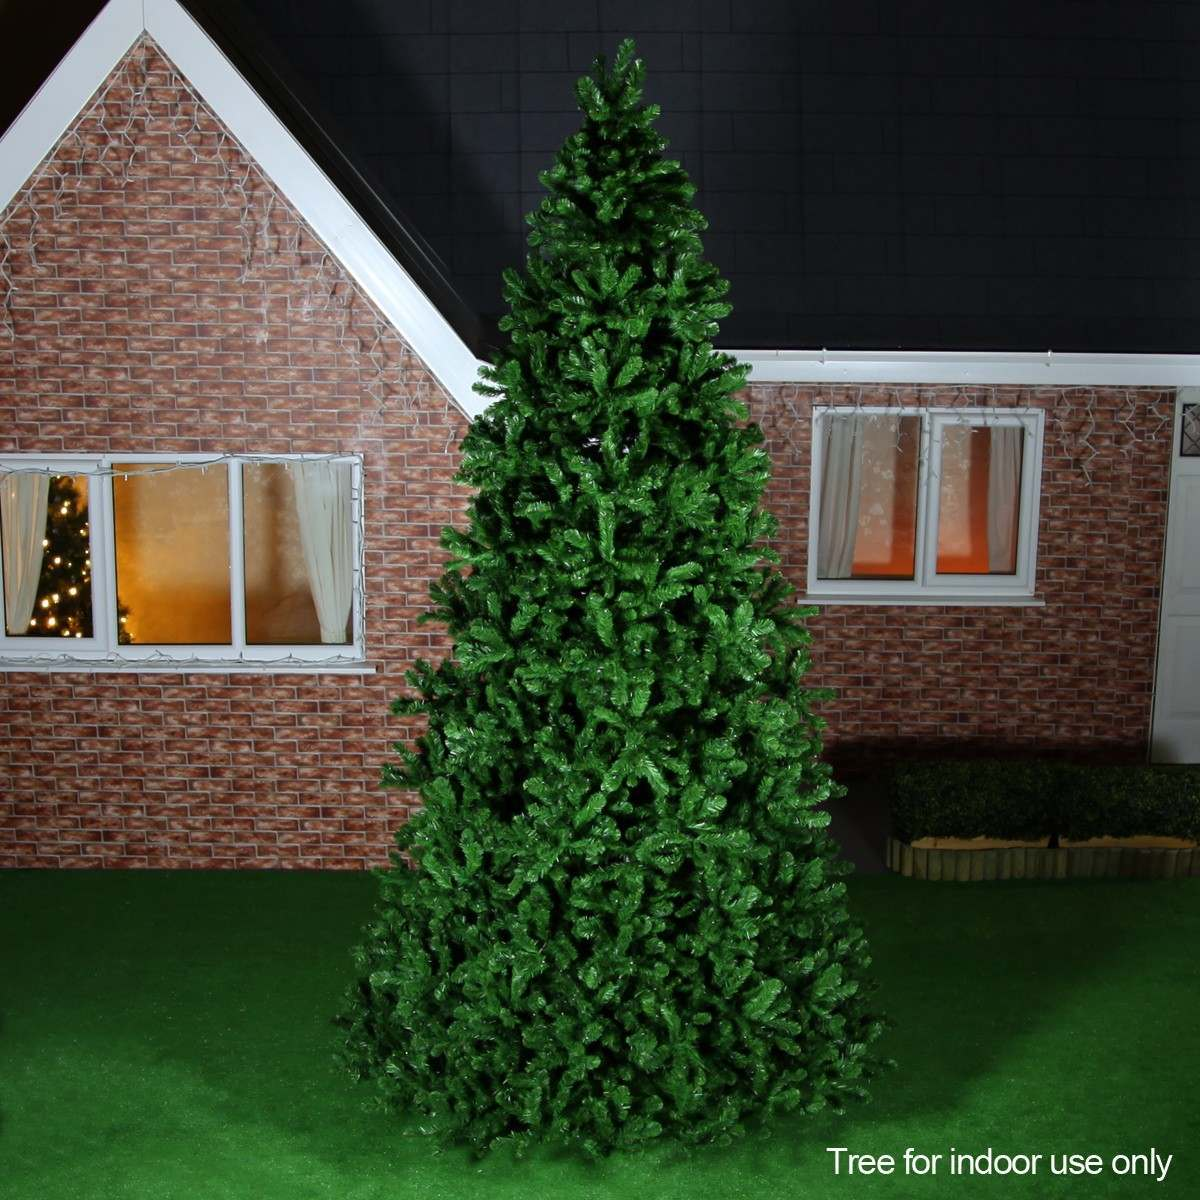 4m Giant Commercial Green Artificial Christmas Tree